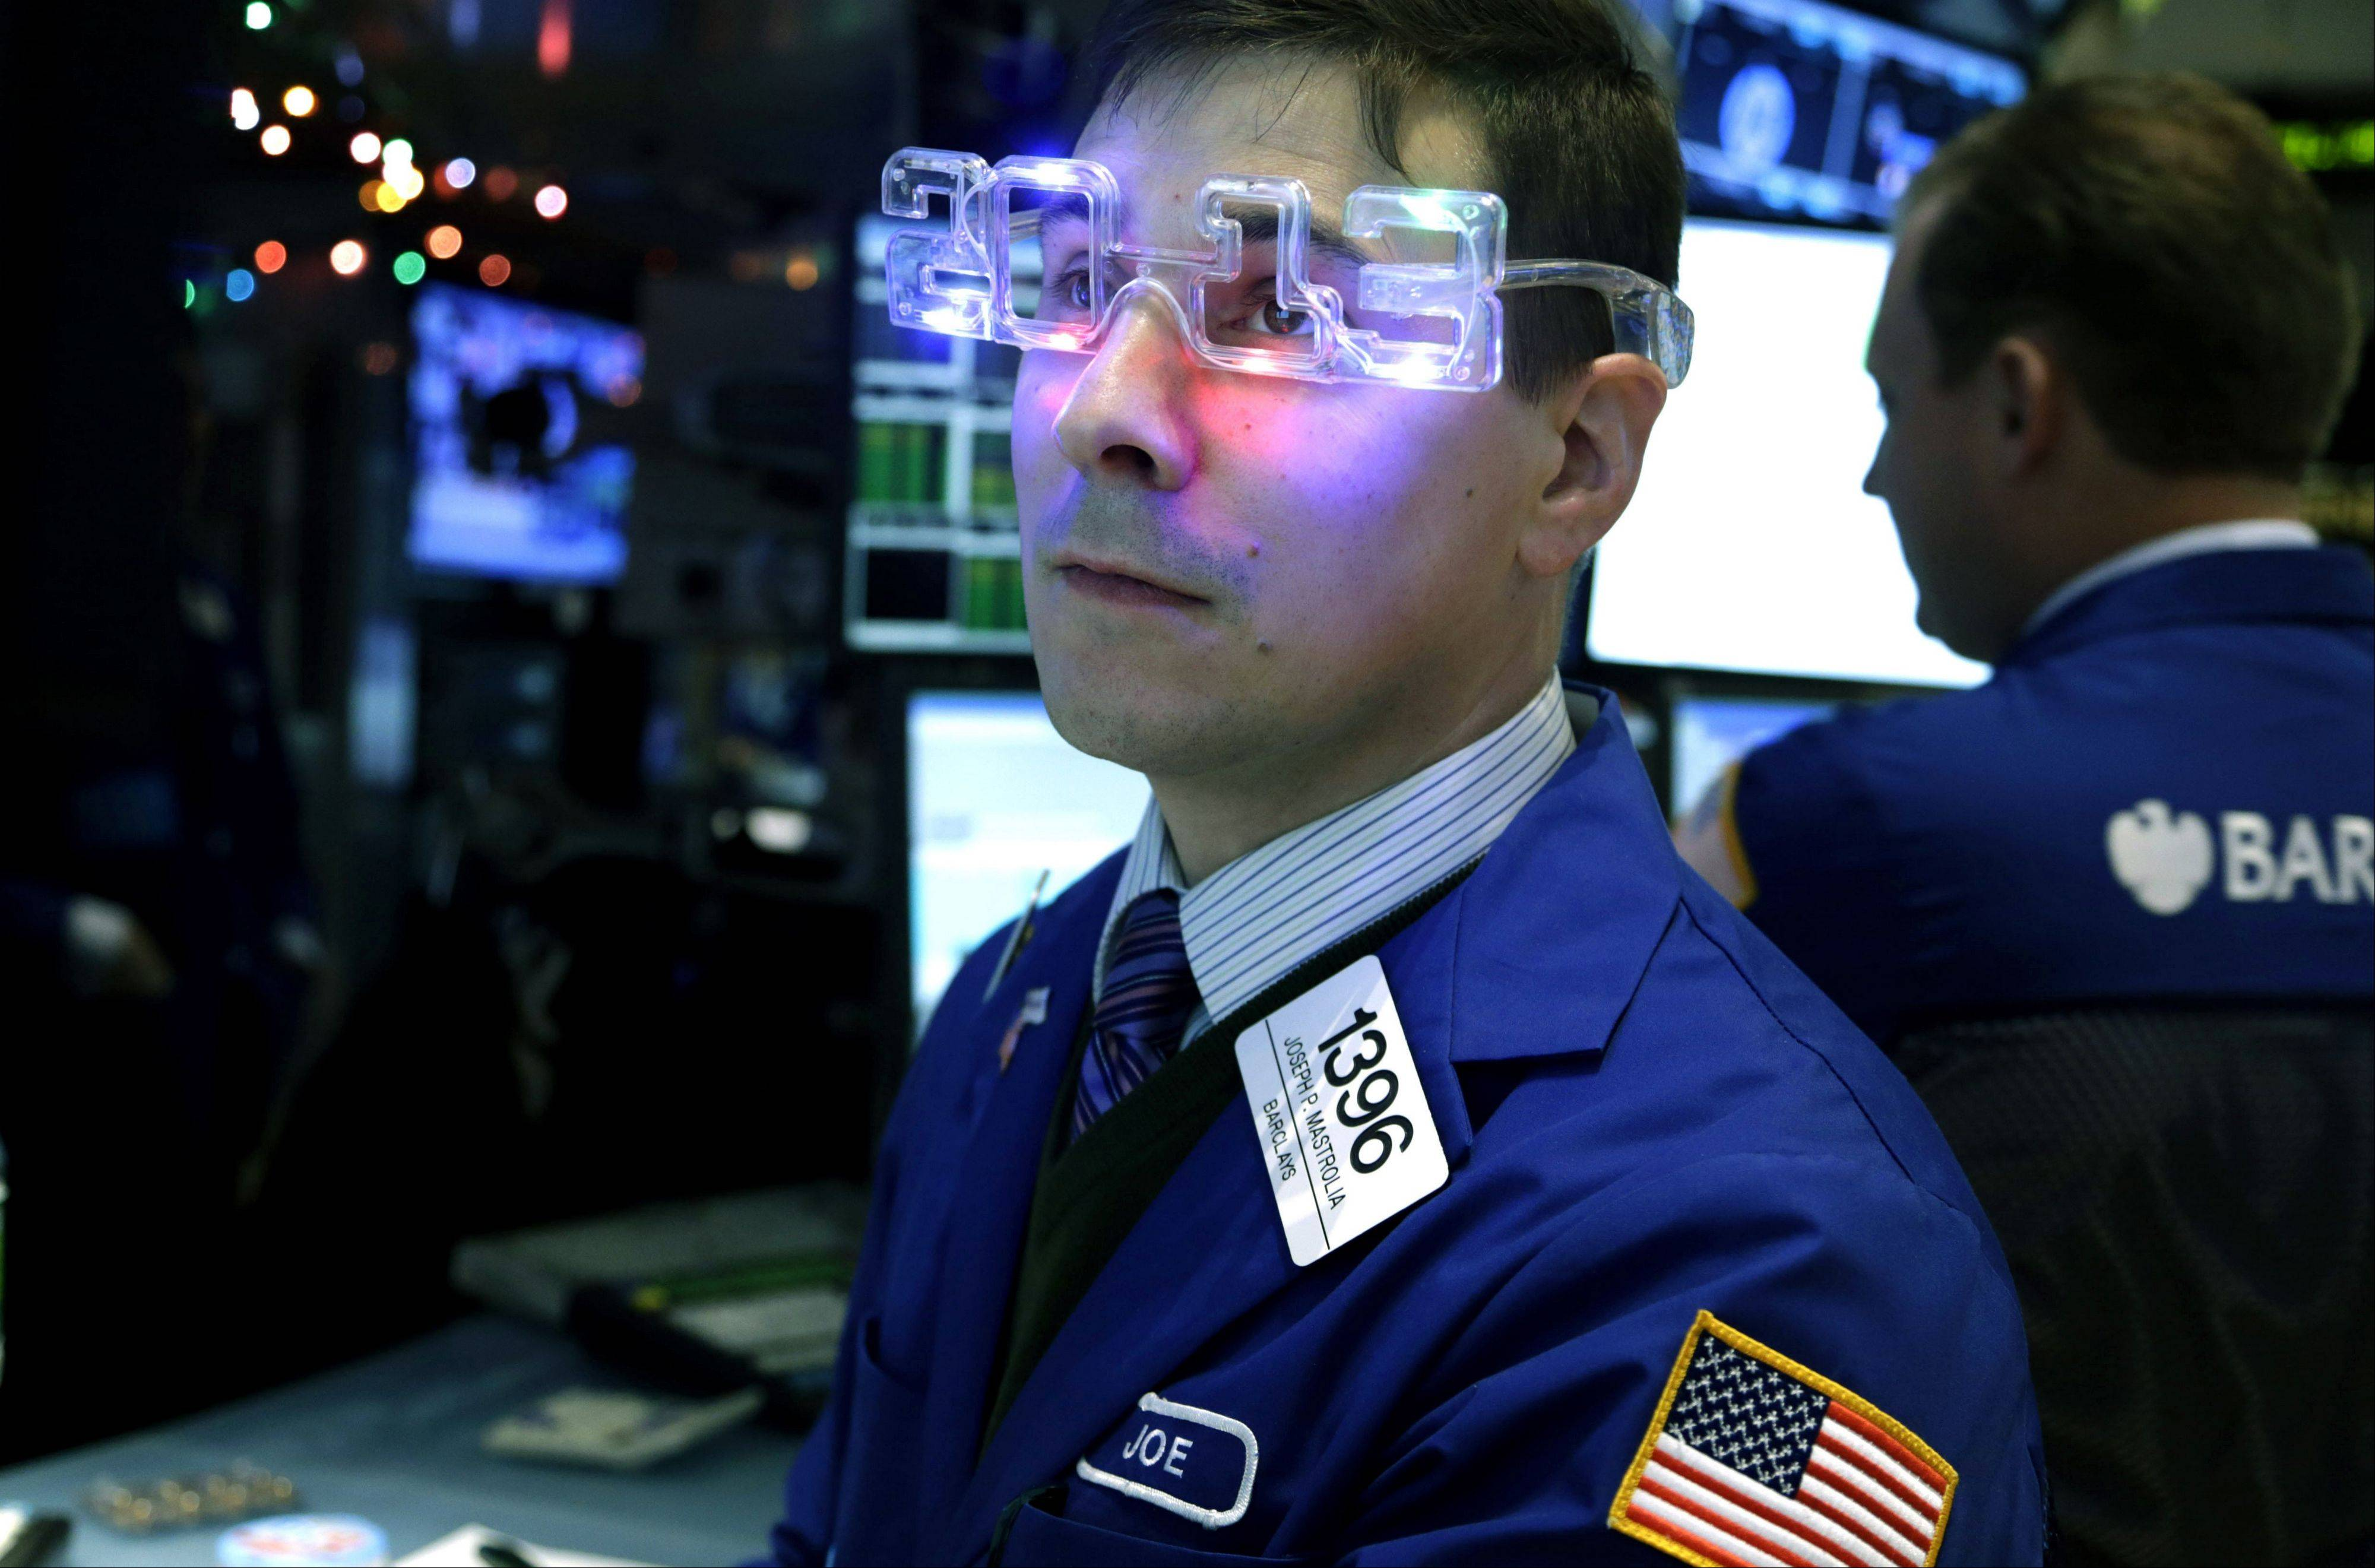 U.S. stocks rose Monday, with benchmark indexes extending all-time highs, as Apple Inc. rallied and the International Monetary Fund indicated it would raise its outlook for the economy.